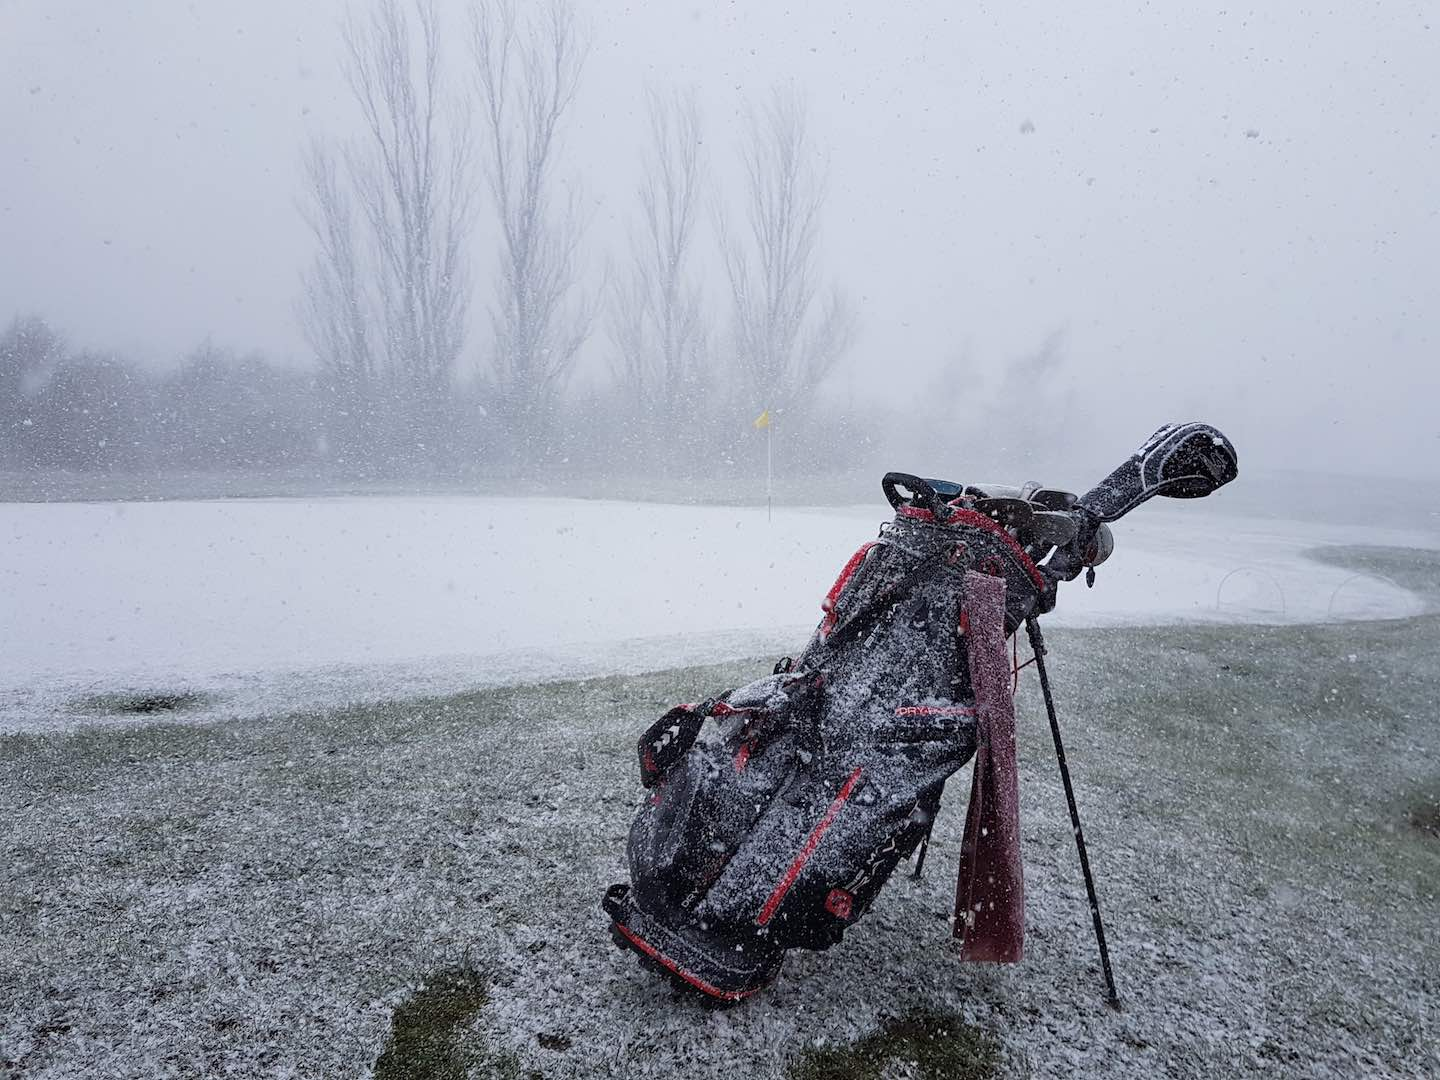 Is your gear ready whatever the weather?